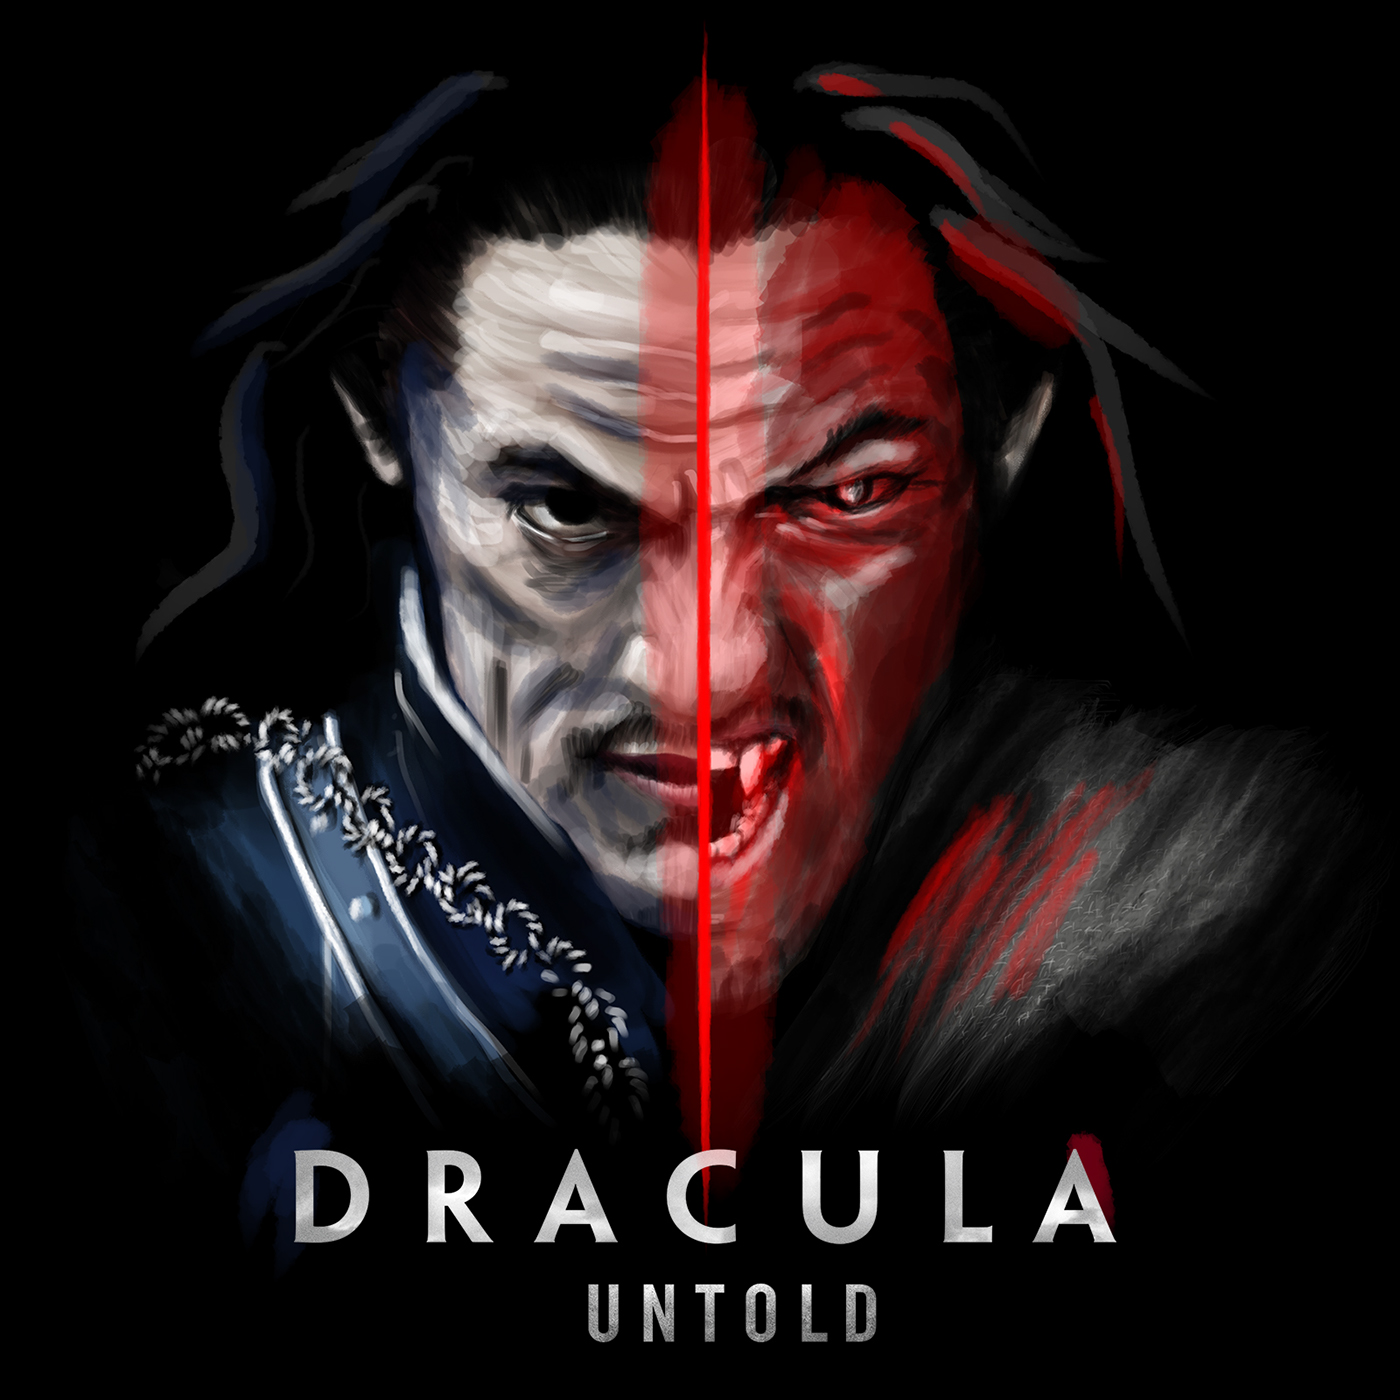 Dracula Art Project Dracula Untold Cover Art on